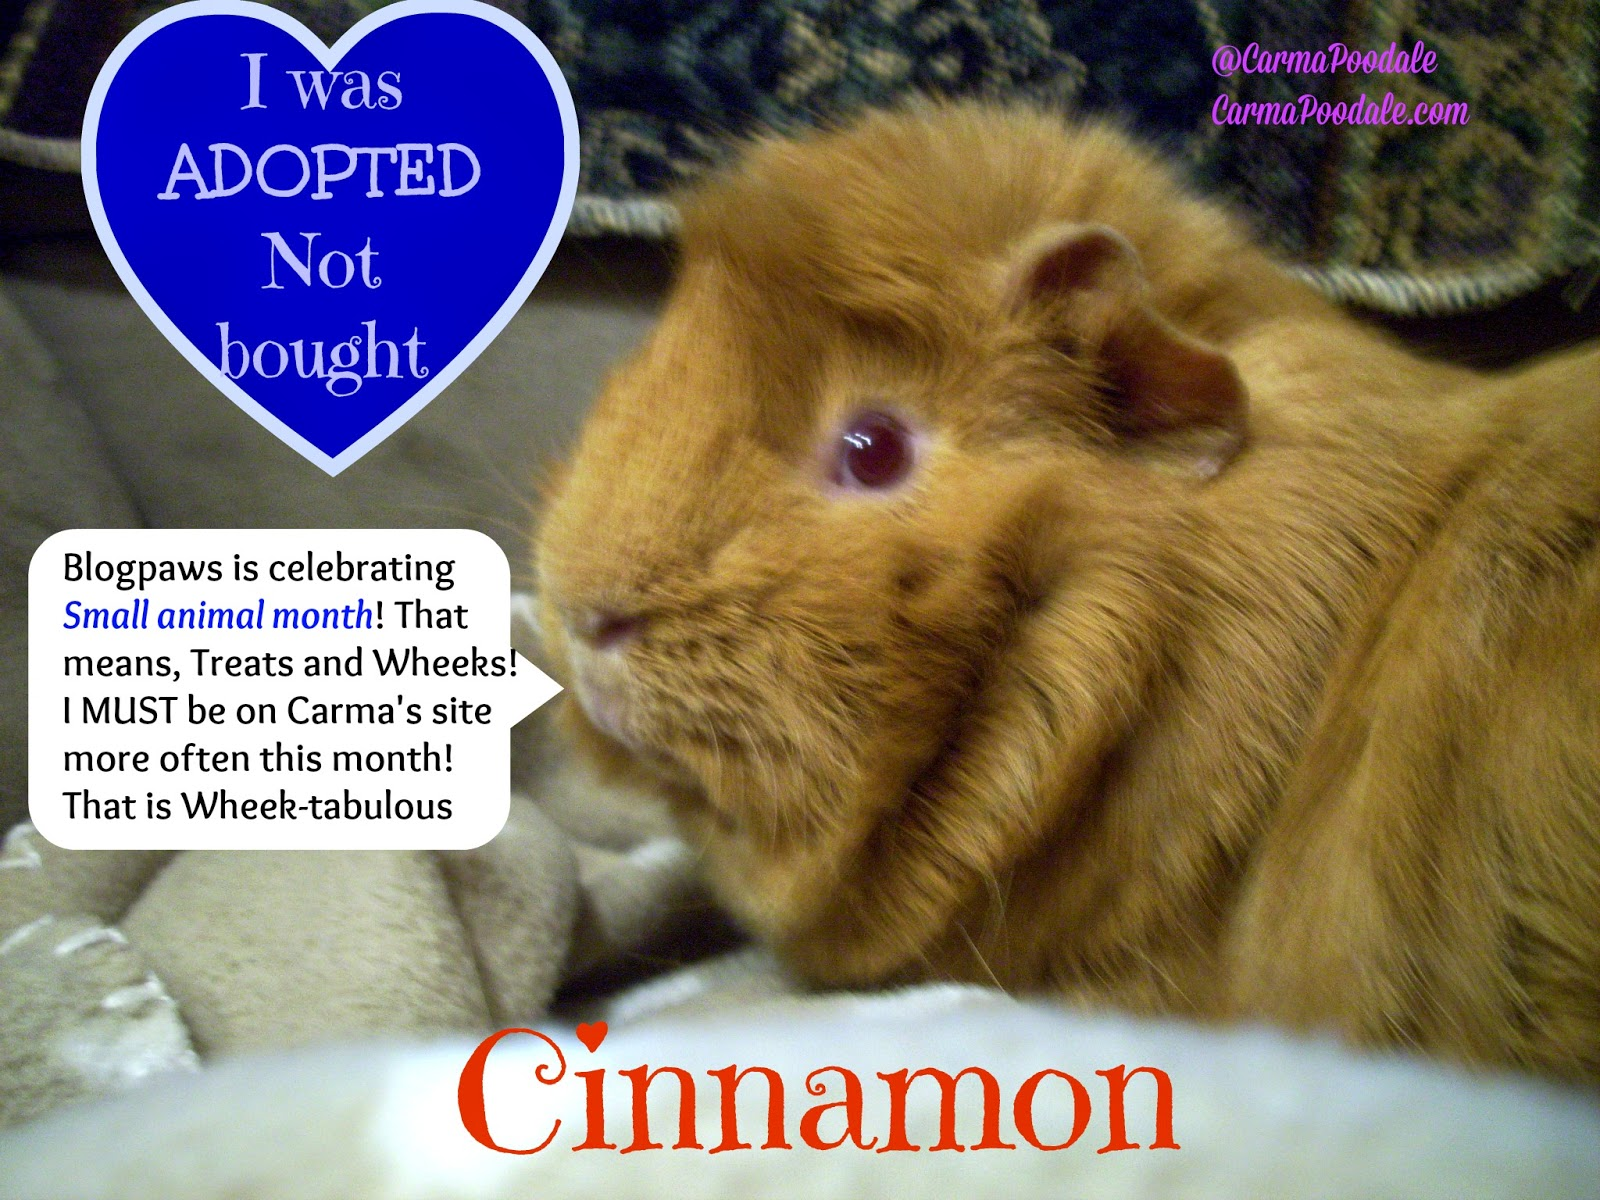 A Cinnamon colored Guinea Pig